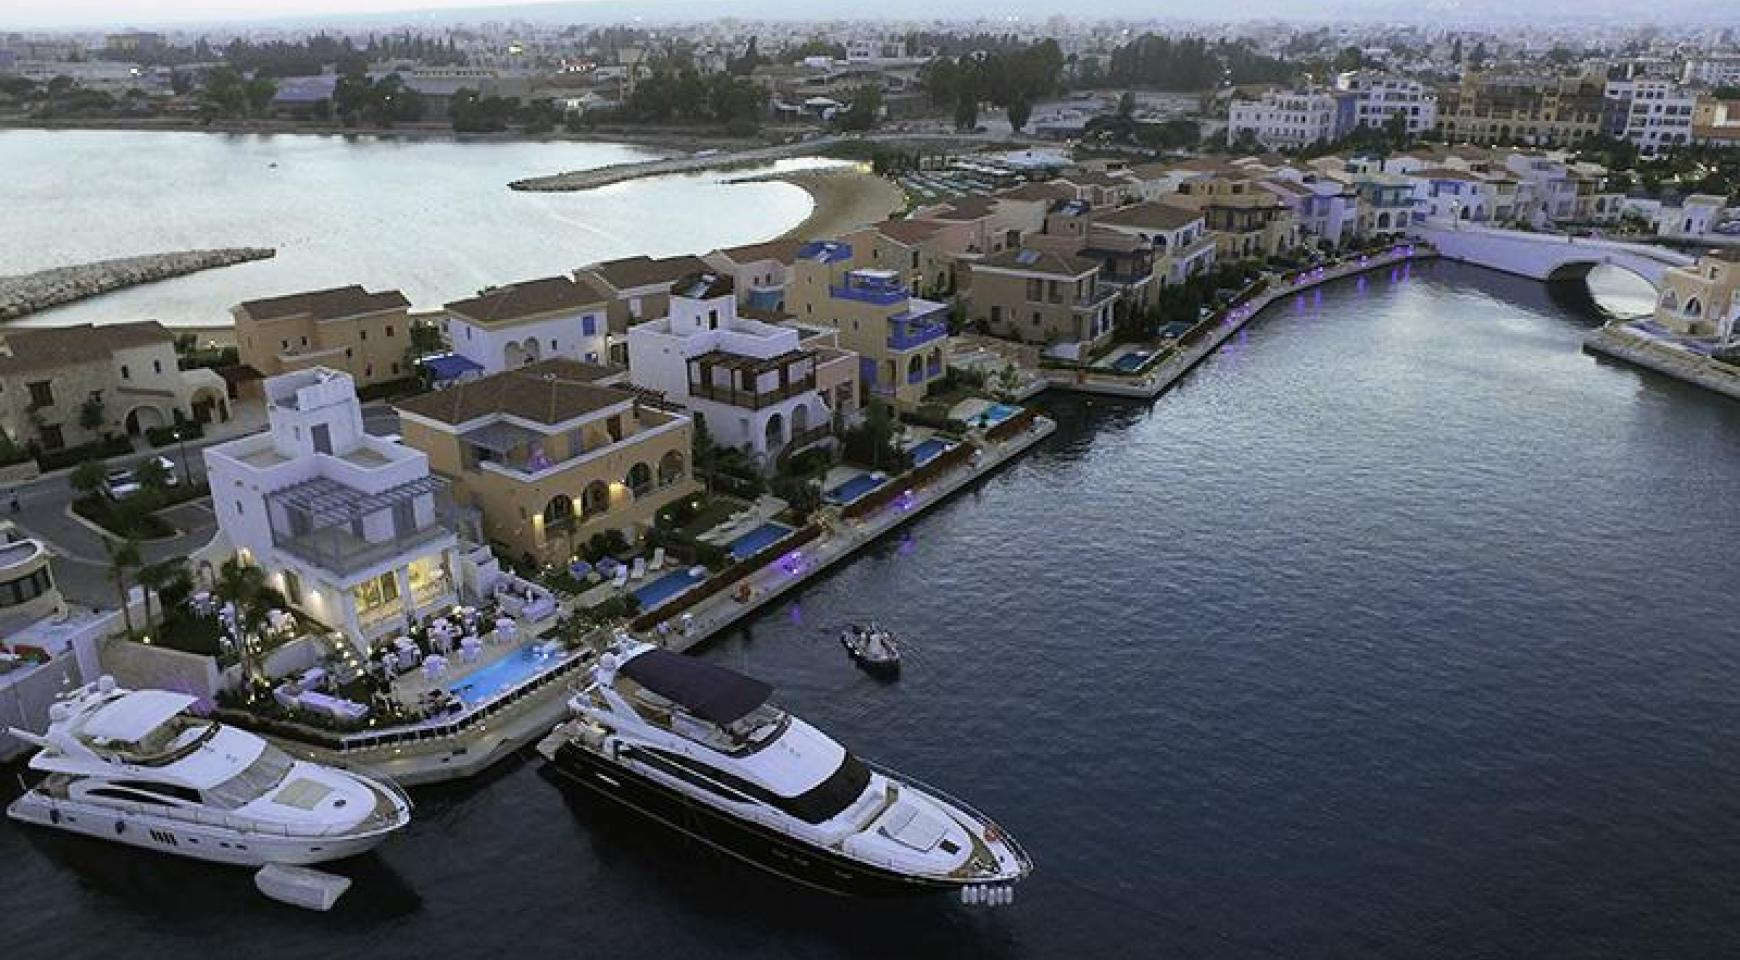 Luxurious 3 Bedroom Villa in an Exclusive development by the Sea - 9